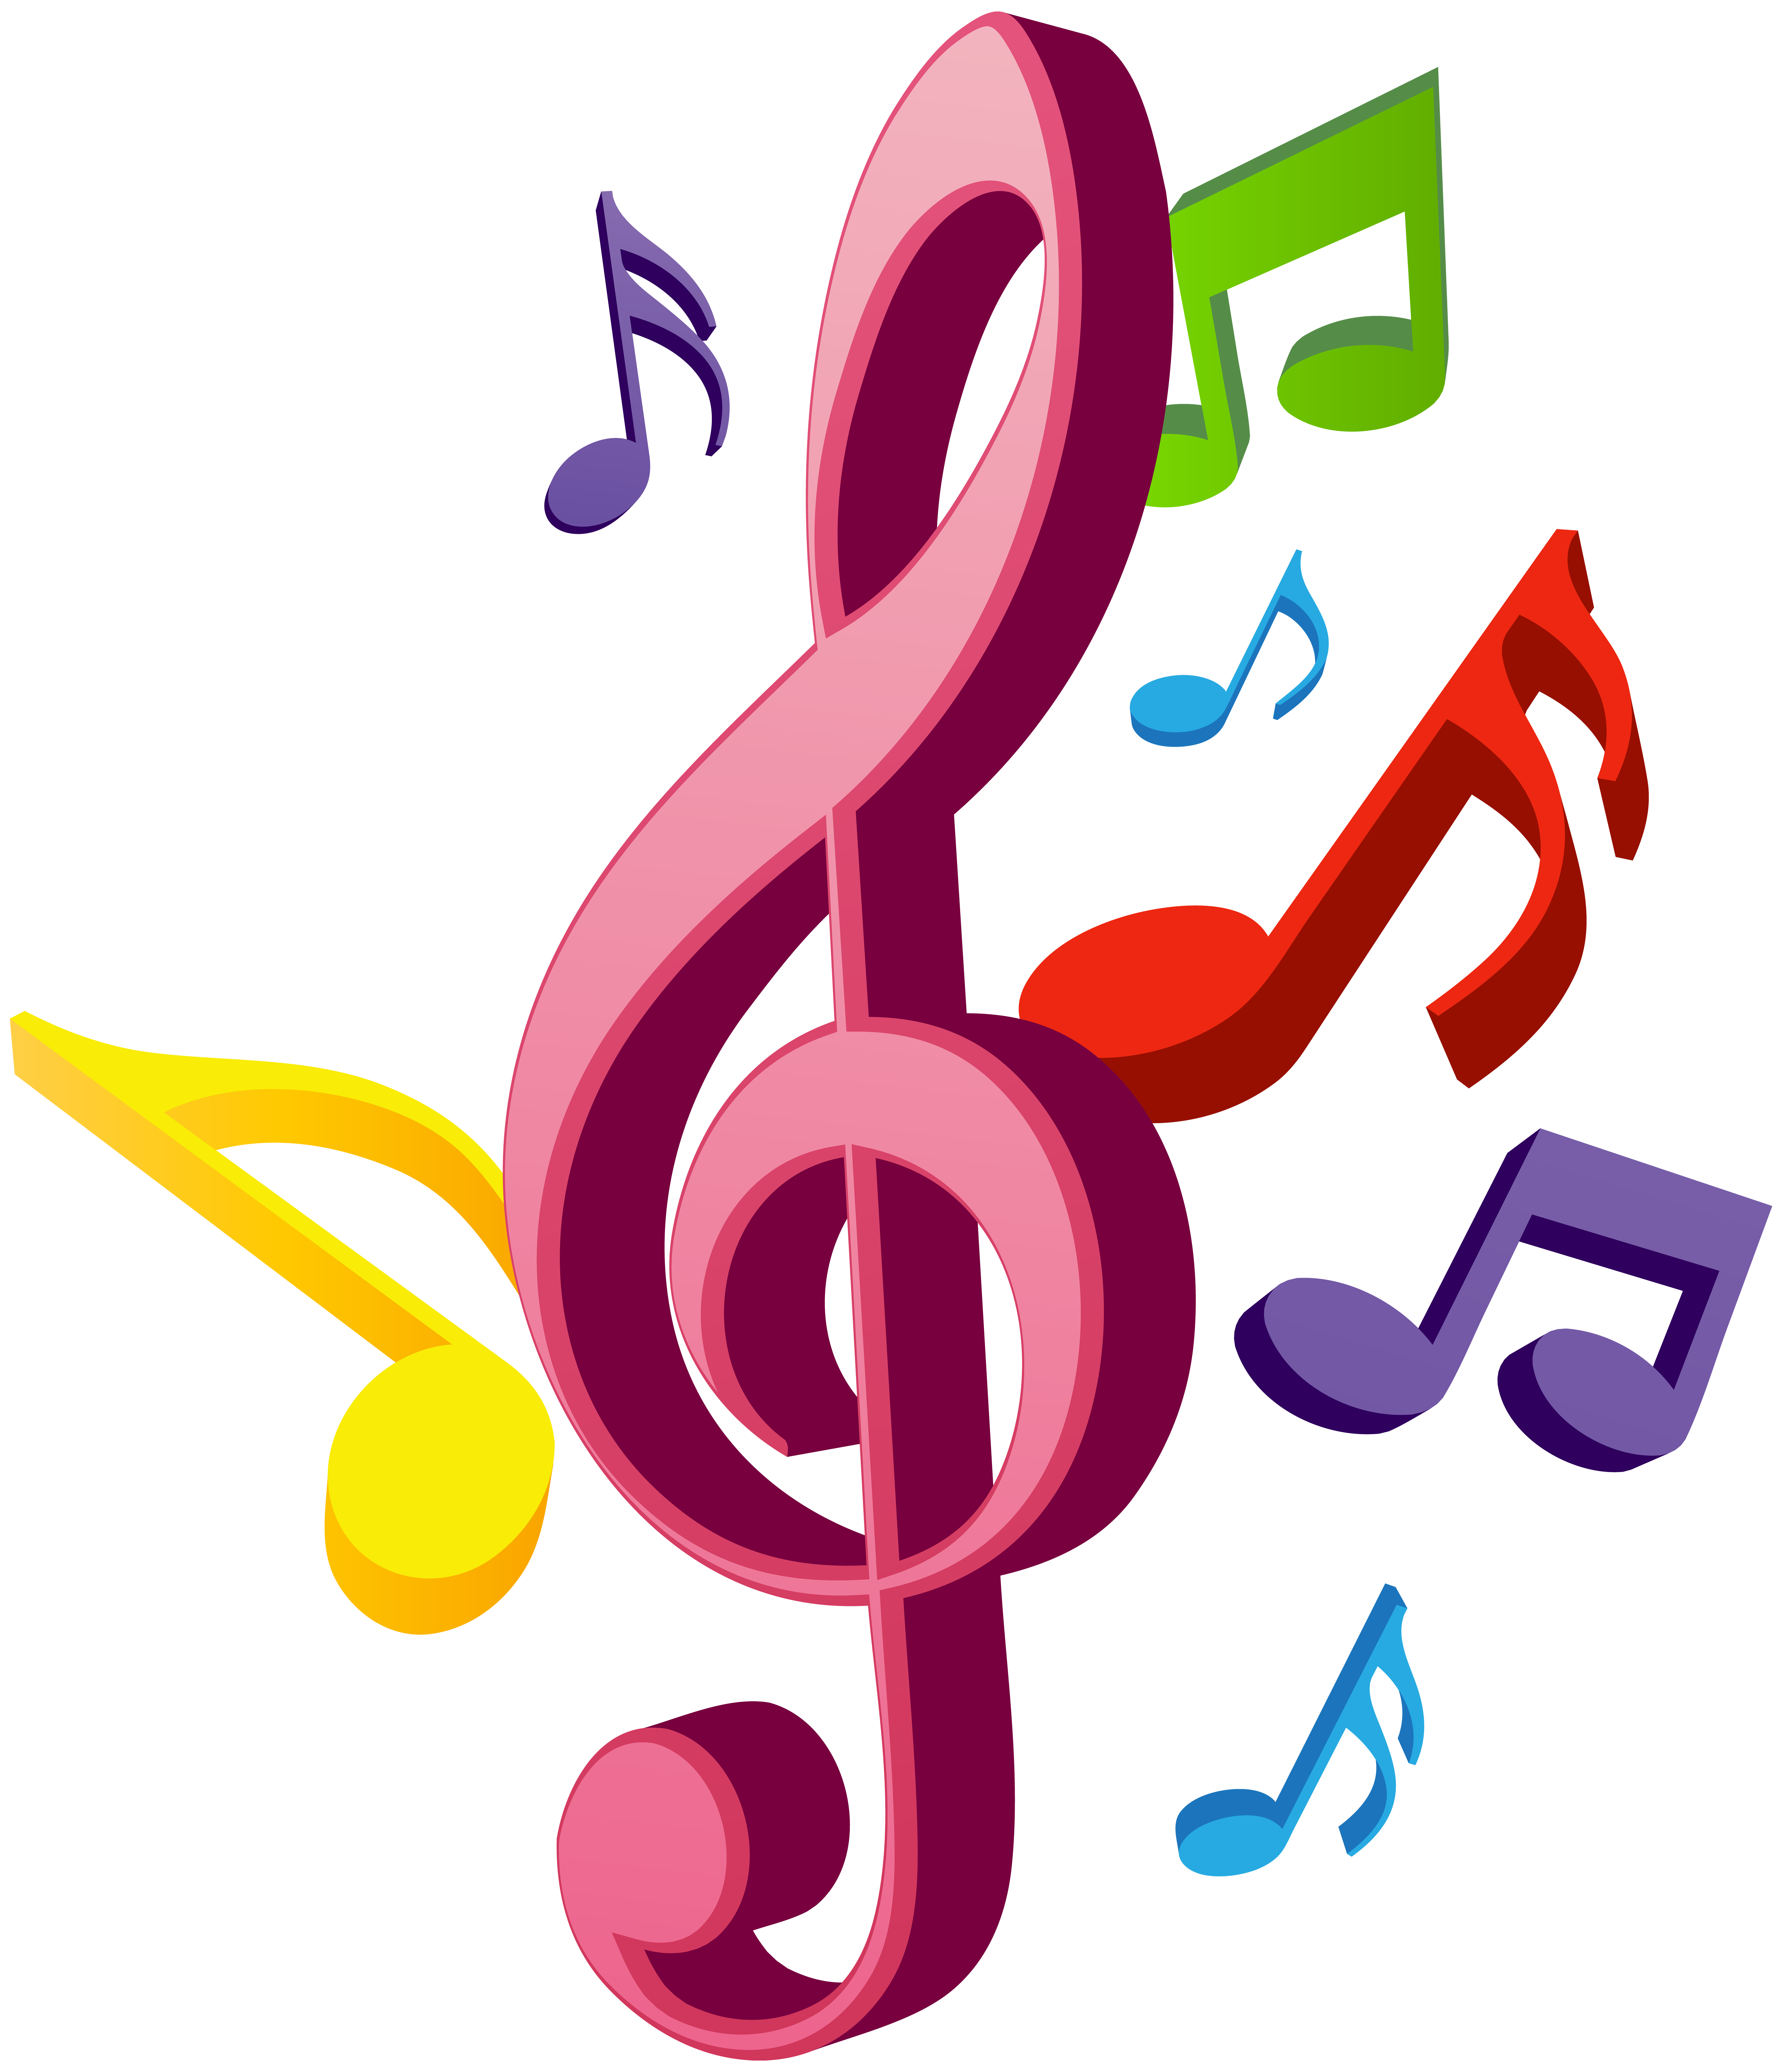 6882x8000 Music Notes Png Clip Artu200b Gallery Yopriceville